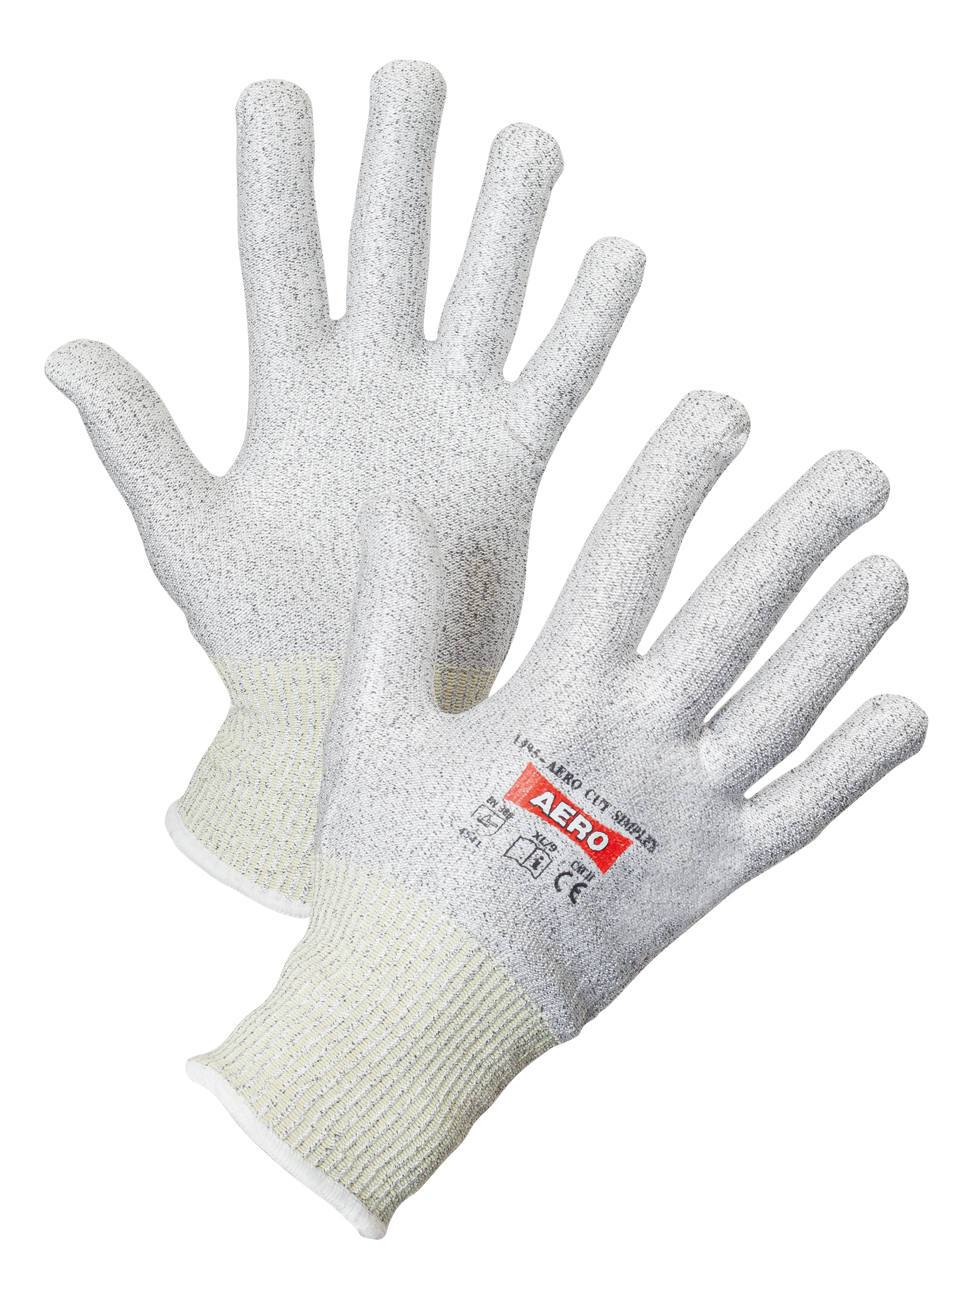 AERO Gloves BaseCut Simplex 1995, cut resistant level 5